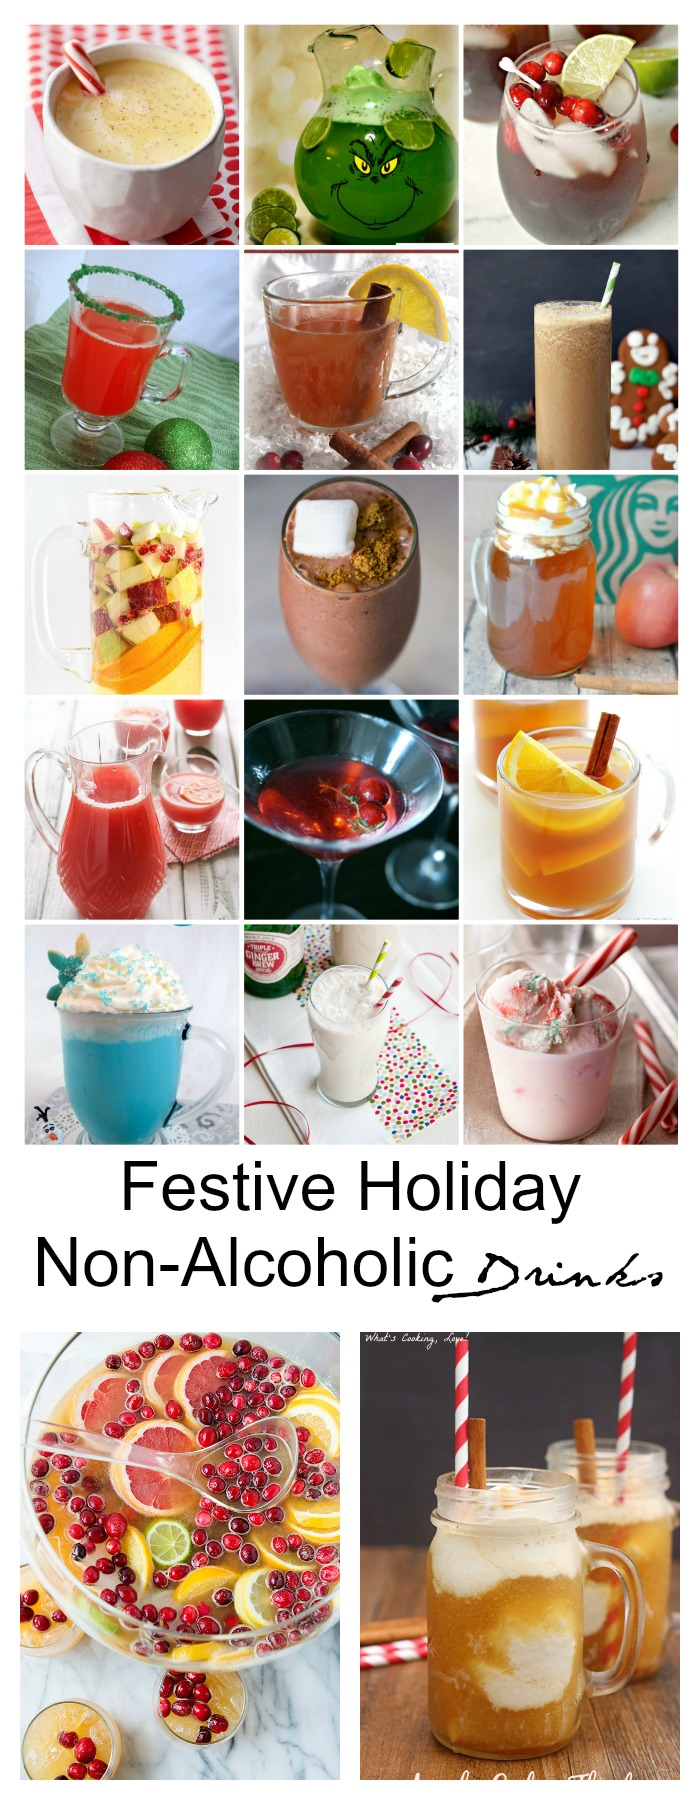 Festive-Holiday-Non-Alcoholic-Drinks-pin